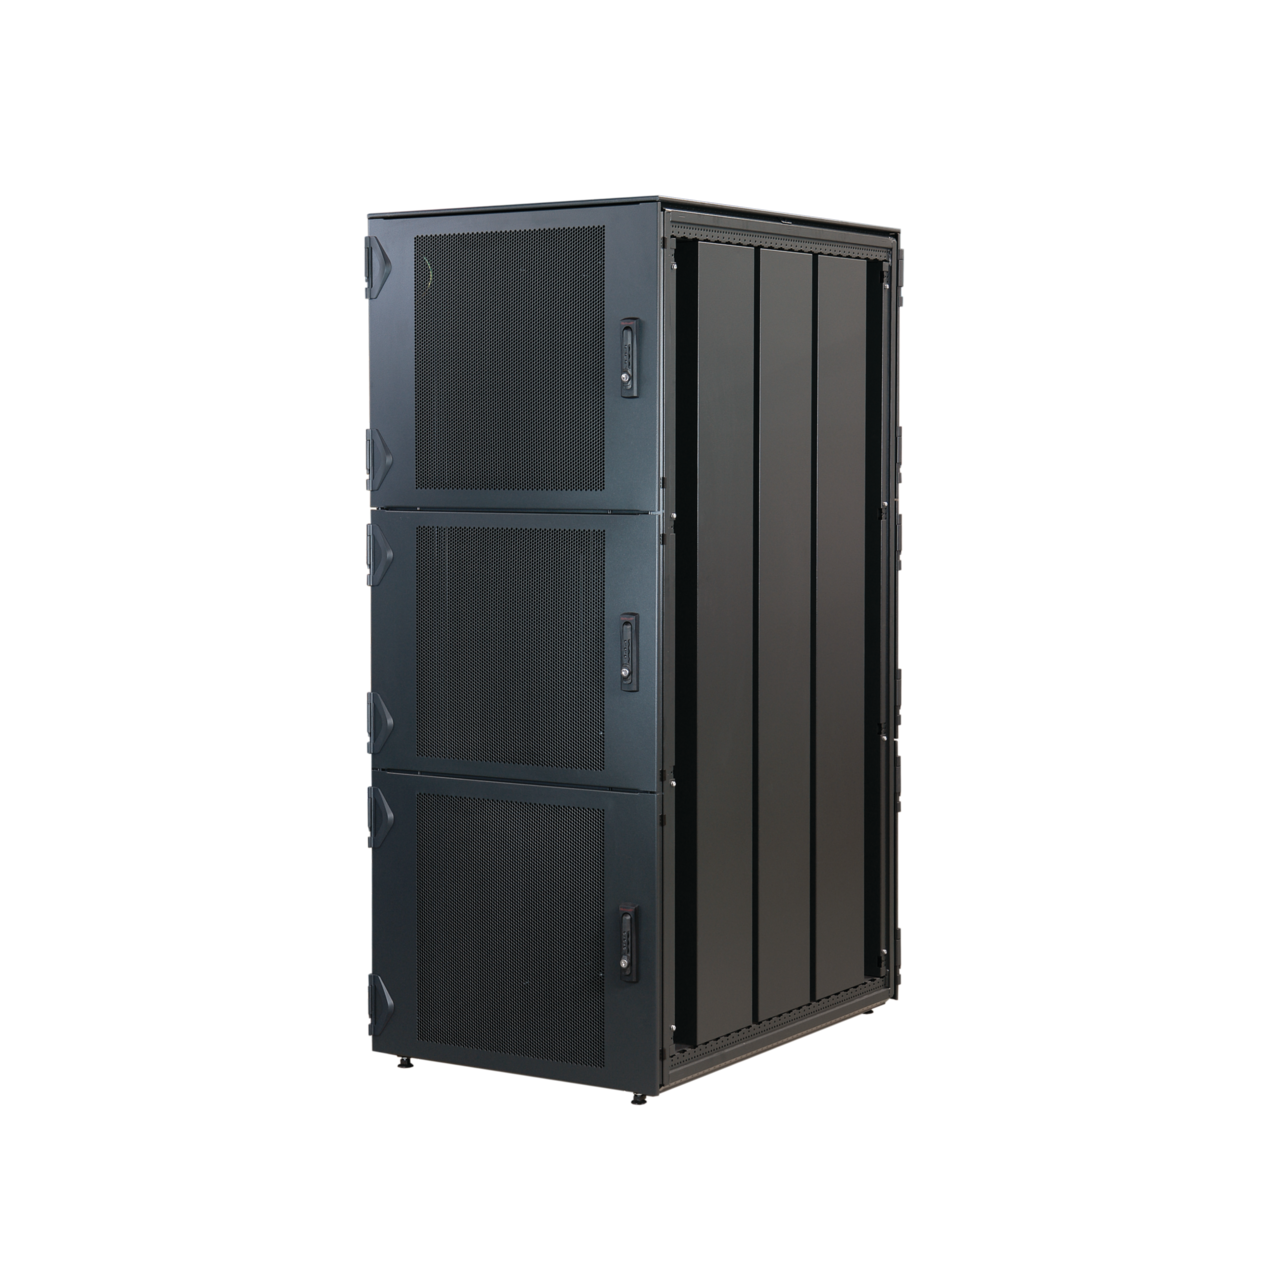 Image for VARISTAR Colocation RAL 7021 from nVent SCHROFF | Europe, Middle East, Africa and India